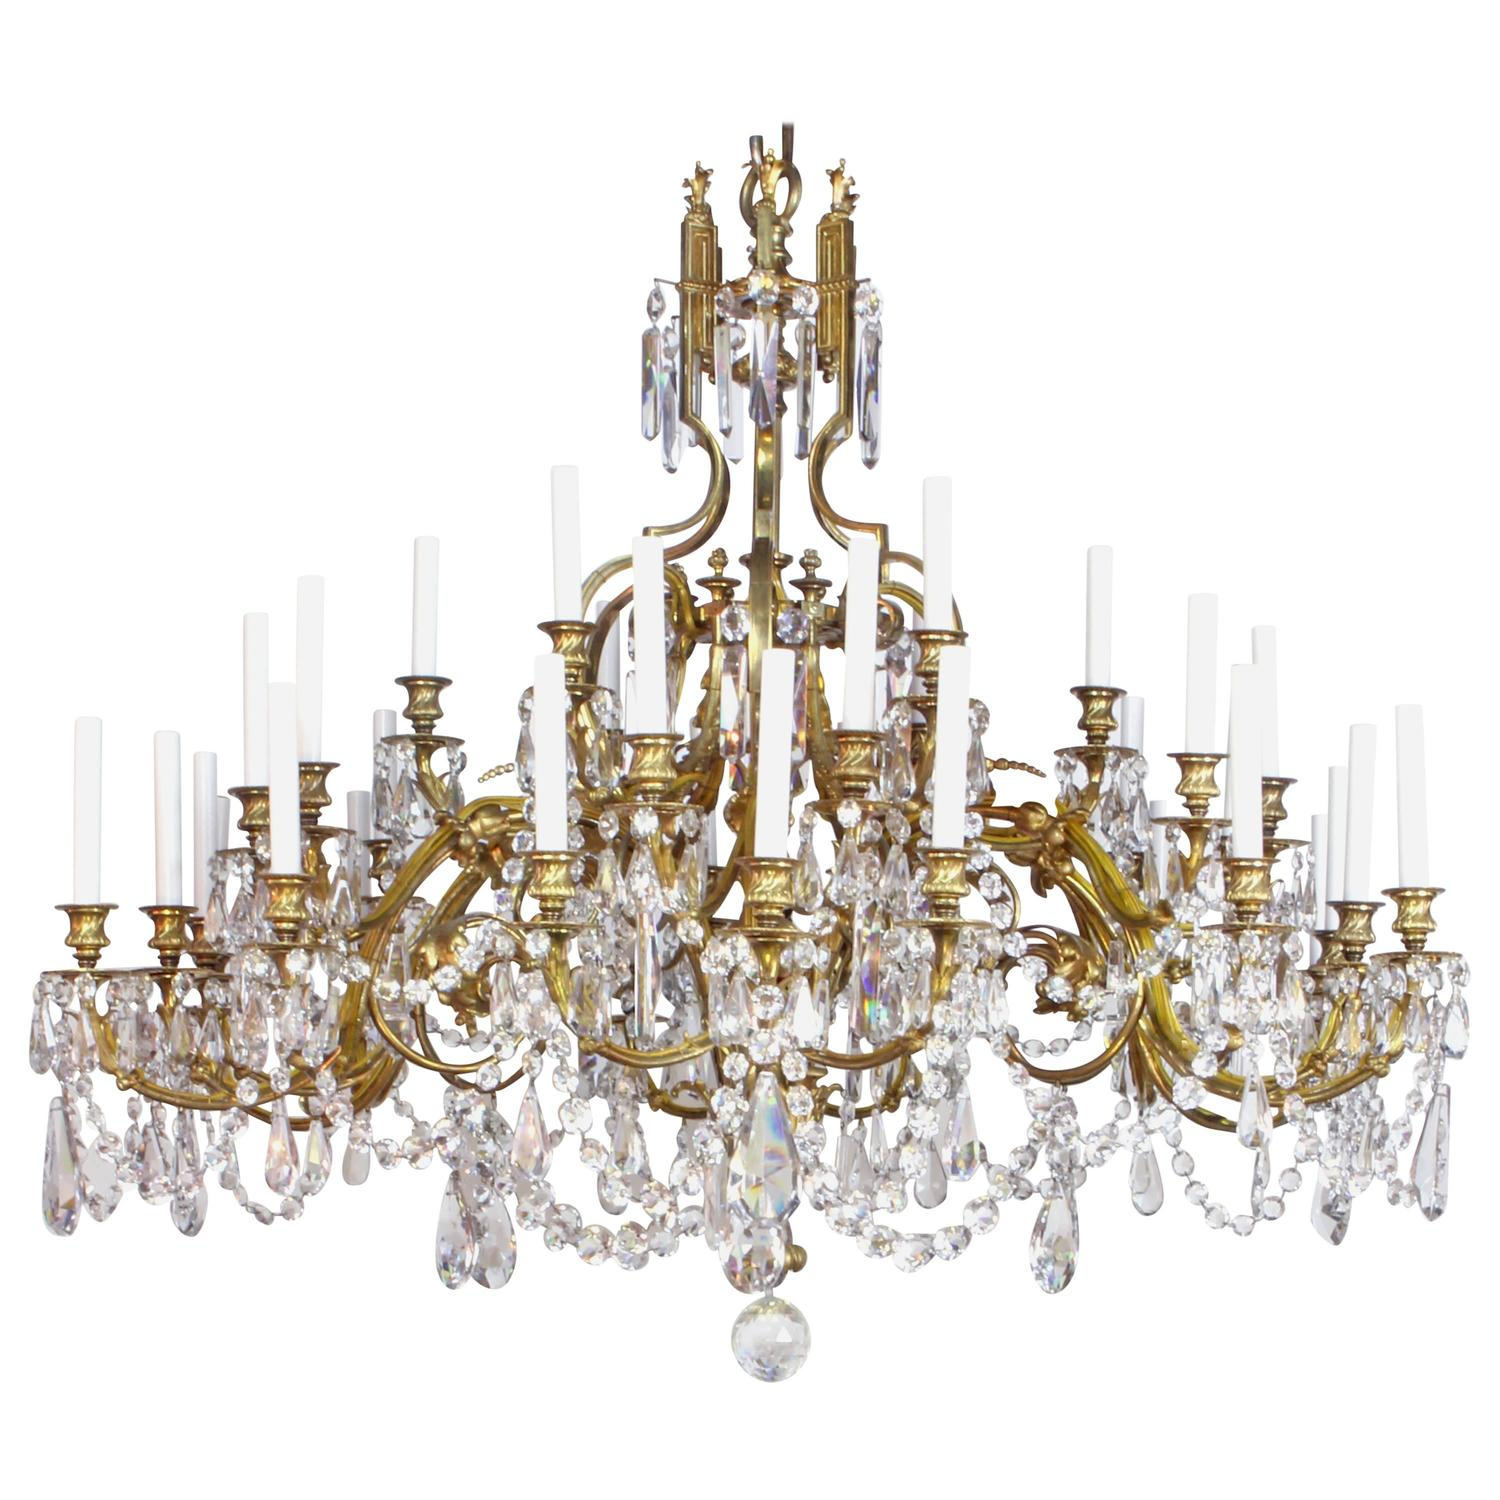 Red Aesthetic Chandelier: 19th Century French Gilt Bronze And Crystal Chandelier For